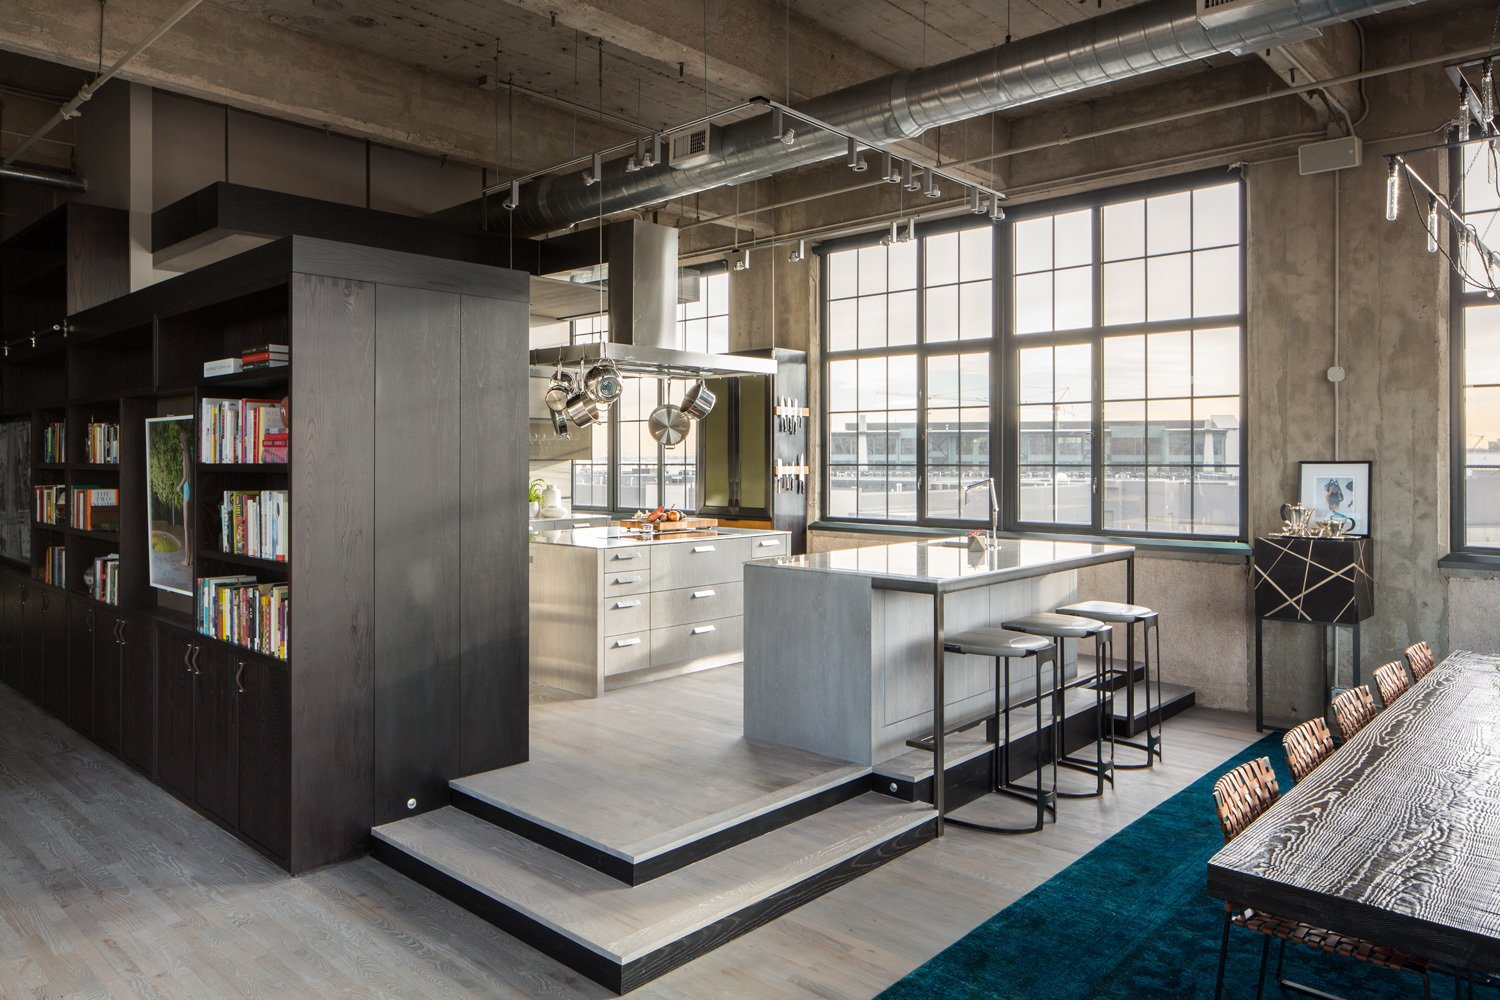 The 1920s building was converted into lofts in 2000. The client started out looking for new cabinet hardware and an improved connection between the laundry room and the guest bath, but ultimately decided to work with the firms on a full overhaul.  Modern Homes in Colorado by Luke Hopping from Industrial Loft in a Former Flour Mill